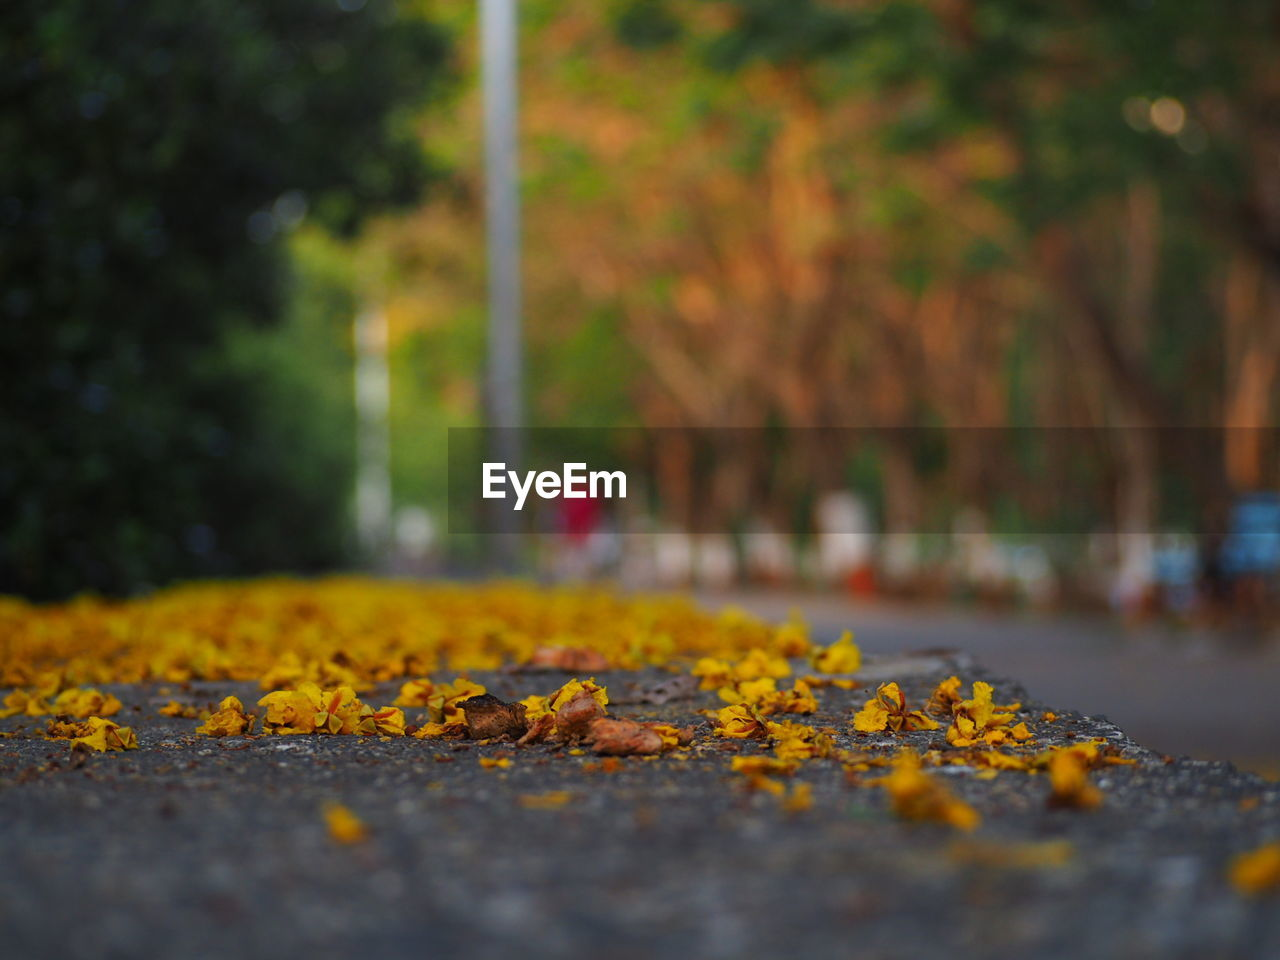 autumn, leaf, change, yellow, nature, selective focus, fallen, leaves, tree, dry, beauty in nature, no people, outdoors, day, close-up, maple leaf, tree trunk, maple, park - man made space, fragility, animal themes